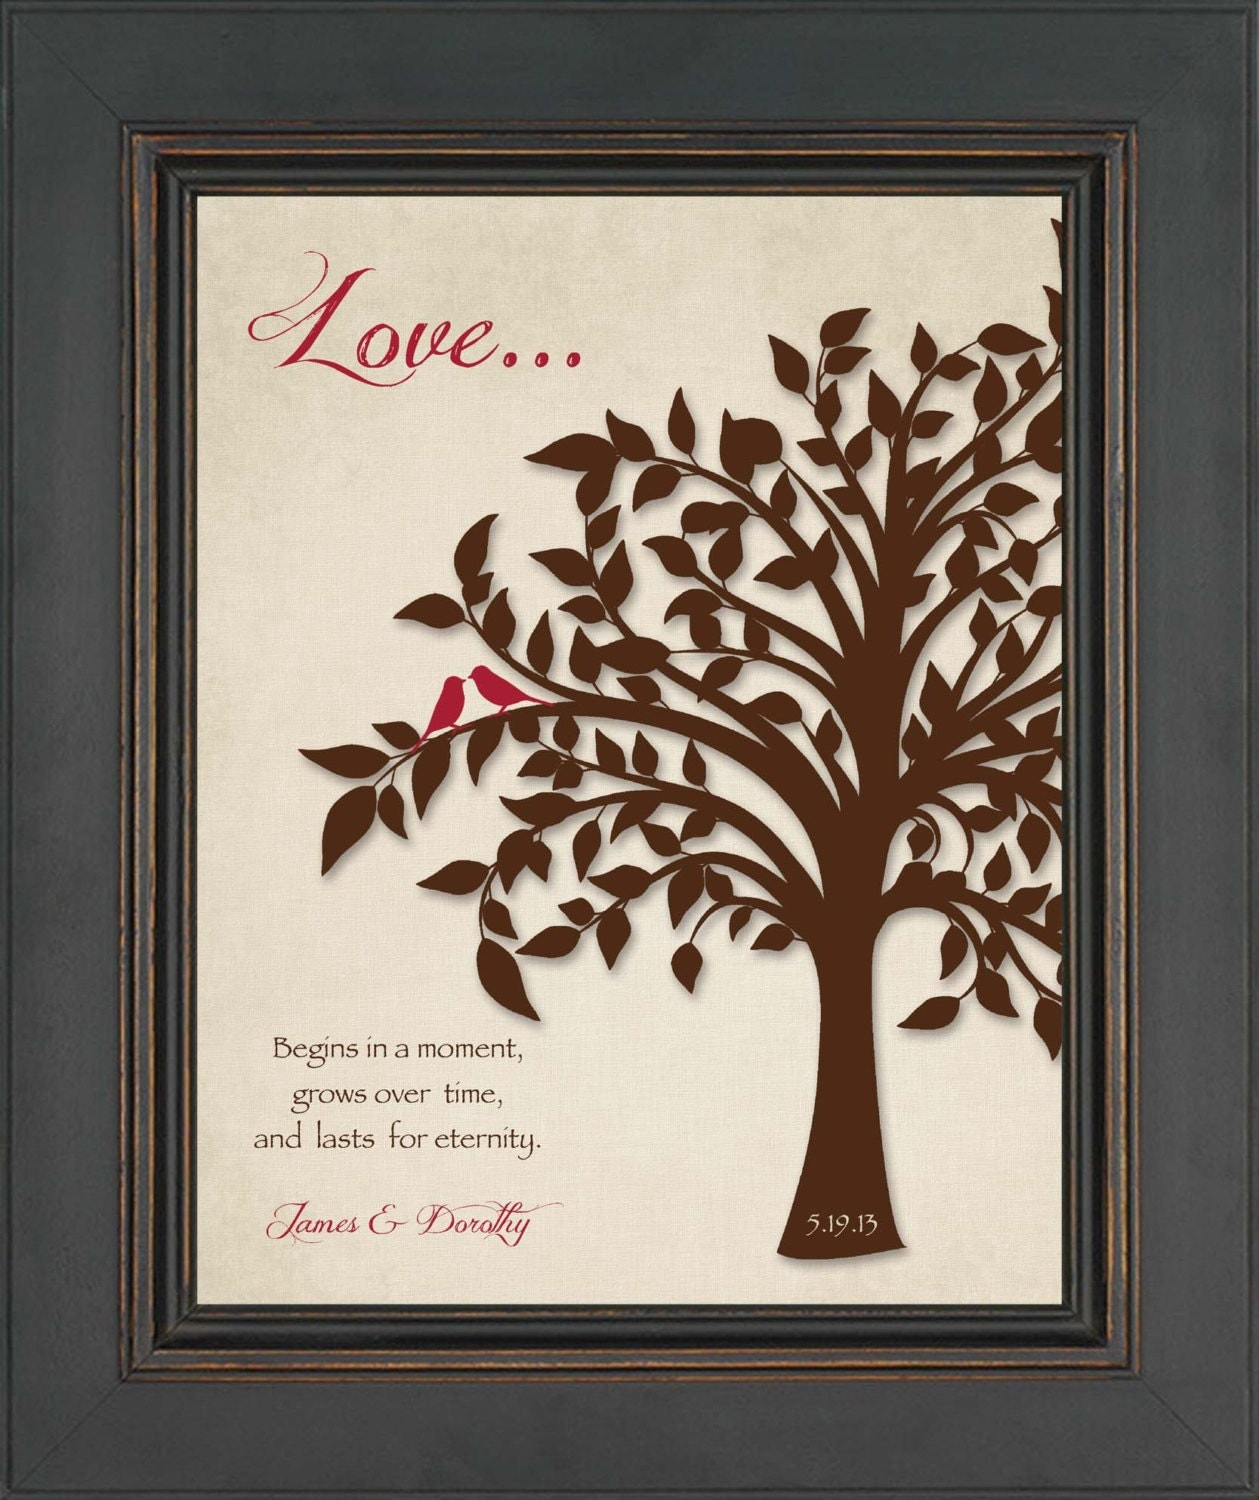 Perfect Wedding Gift Ideas: Custom Wedding Gift Or Anniversary Gift For Couple 8x10